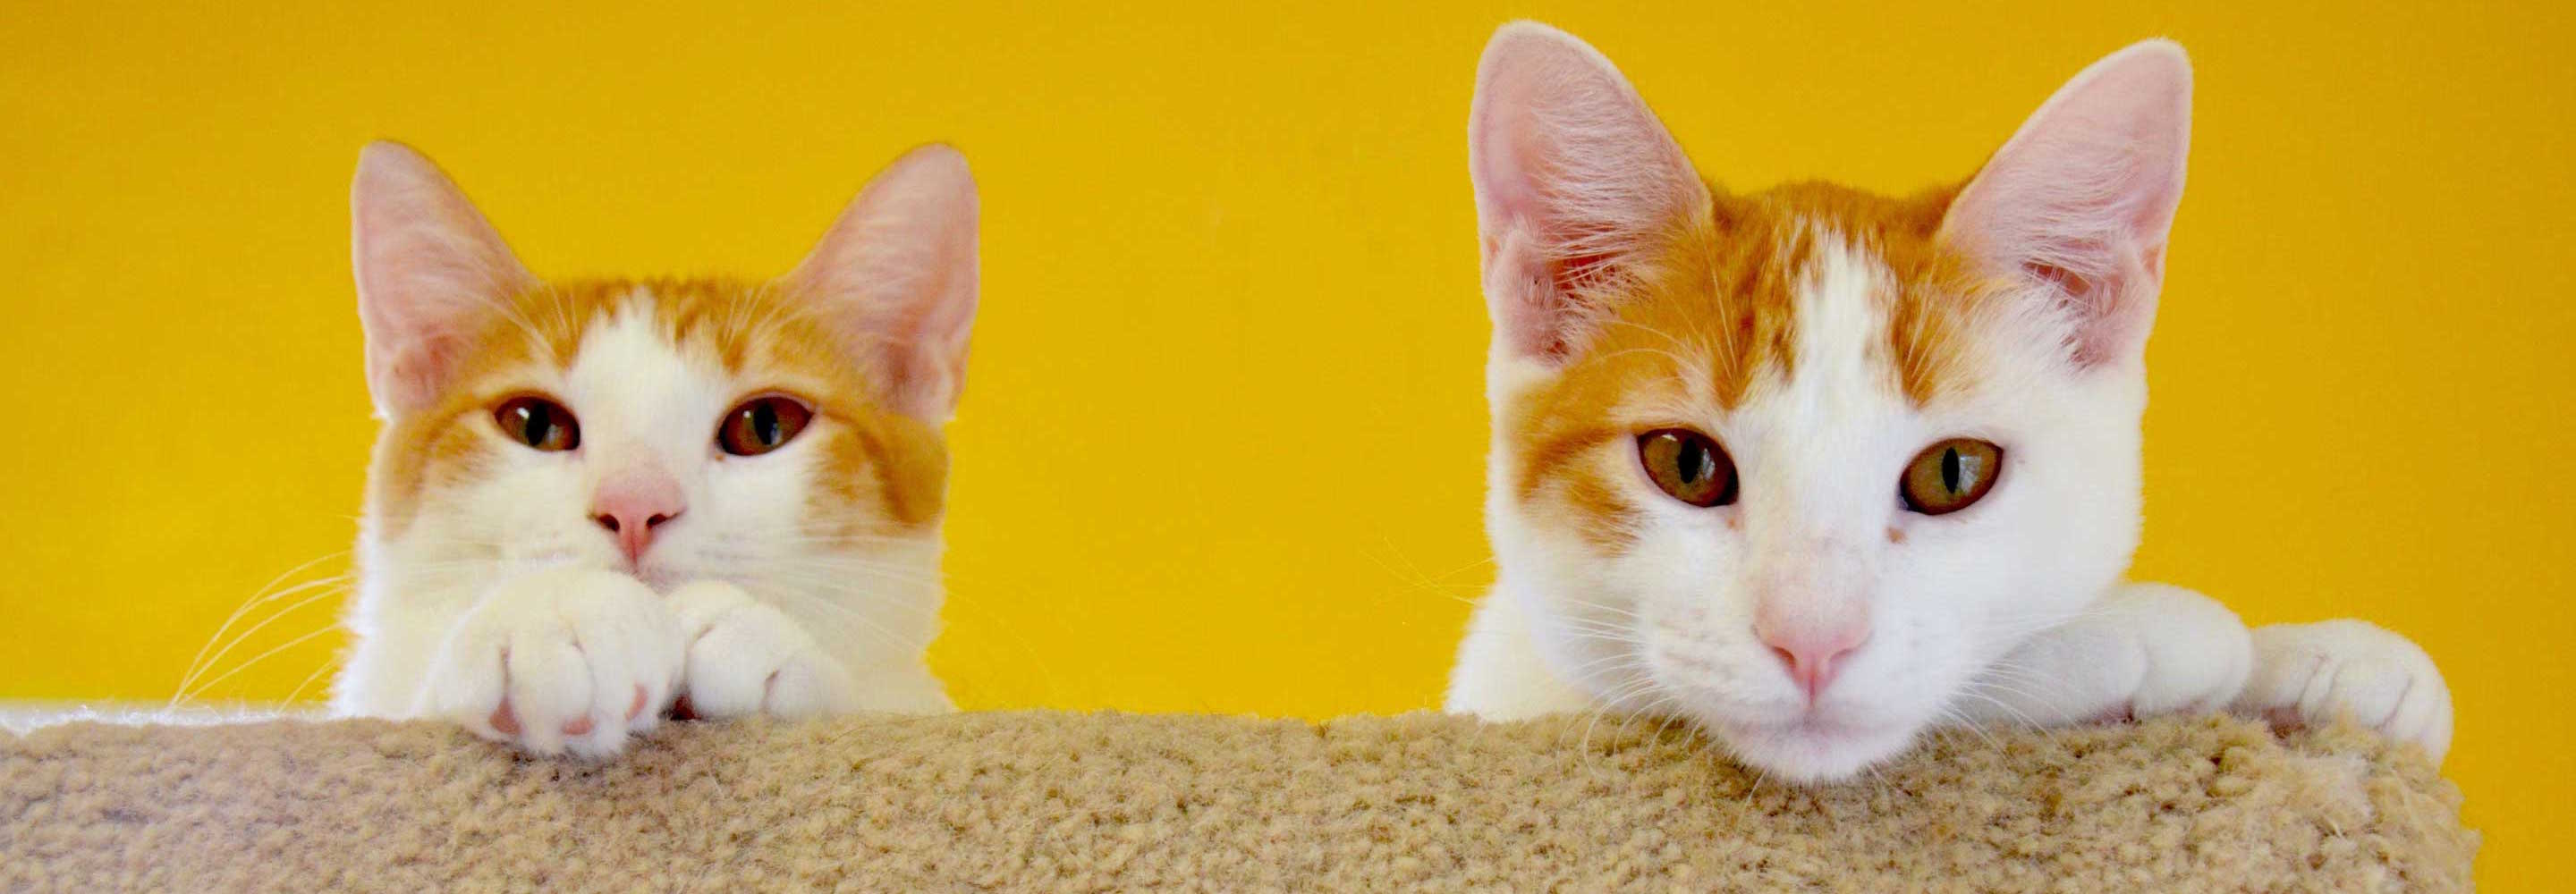 Billboard Cats With Yellow Background